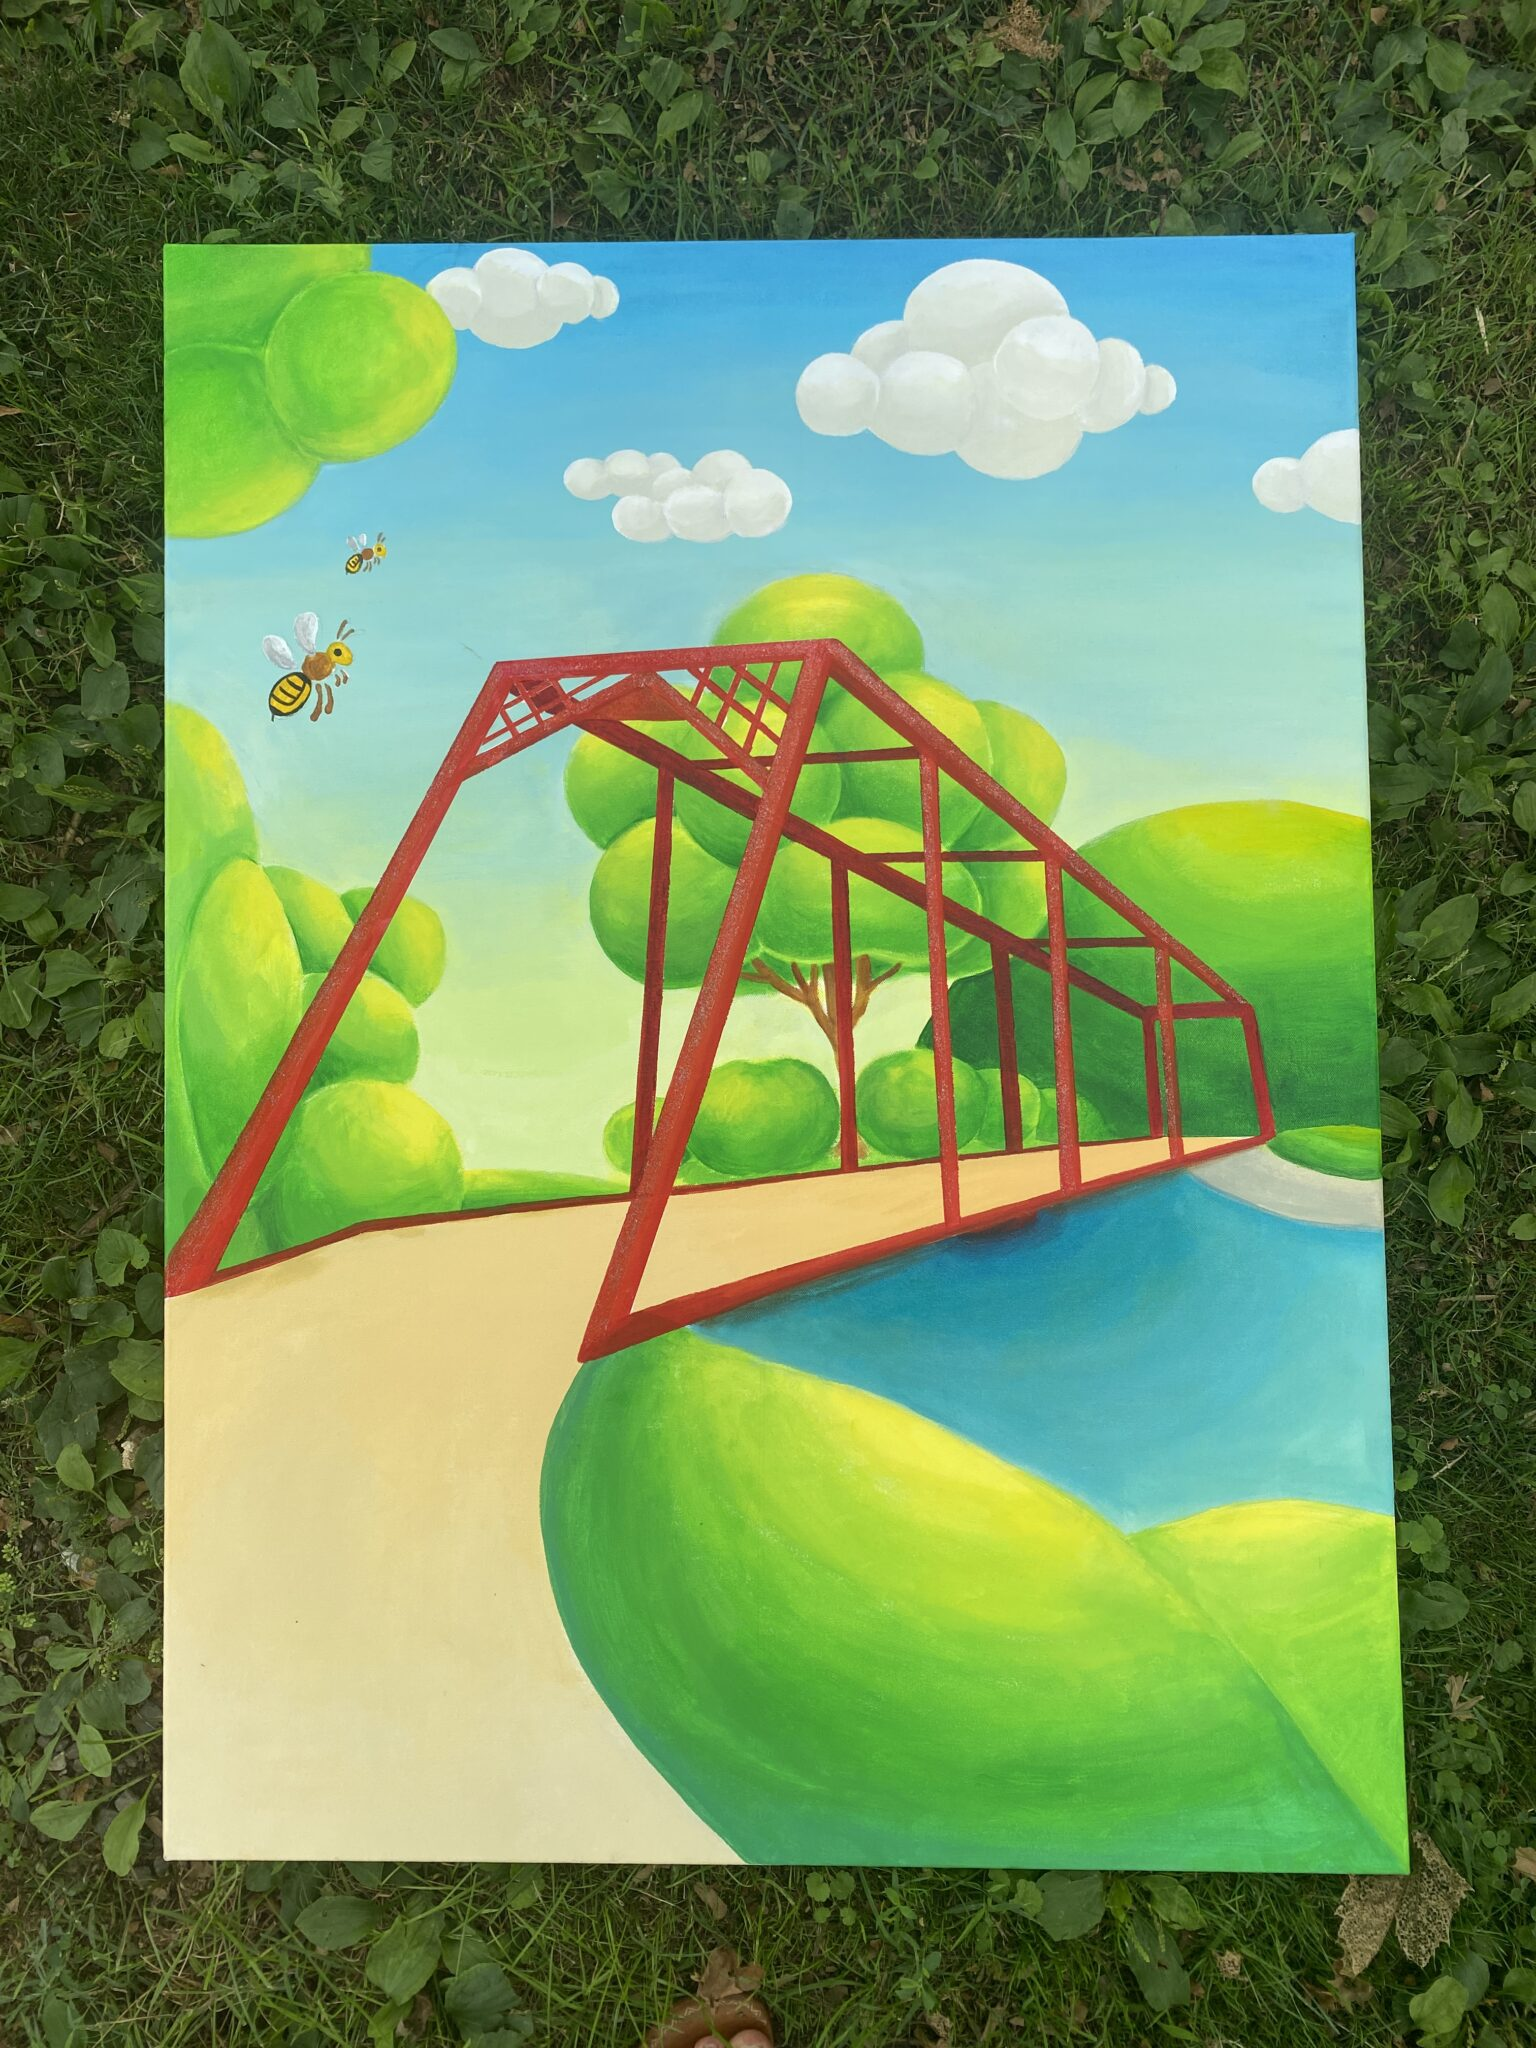 Seunga's Painting with bright colors of red bridge, path and stream